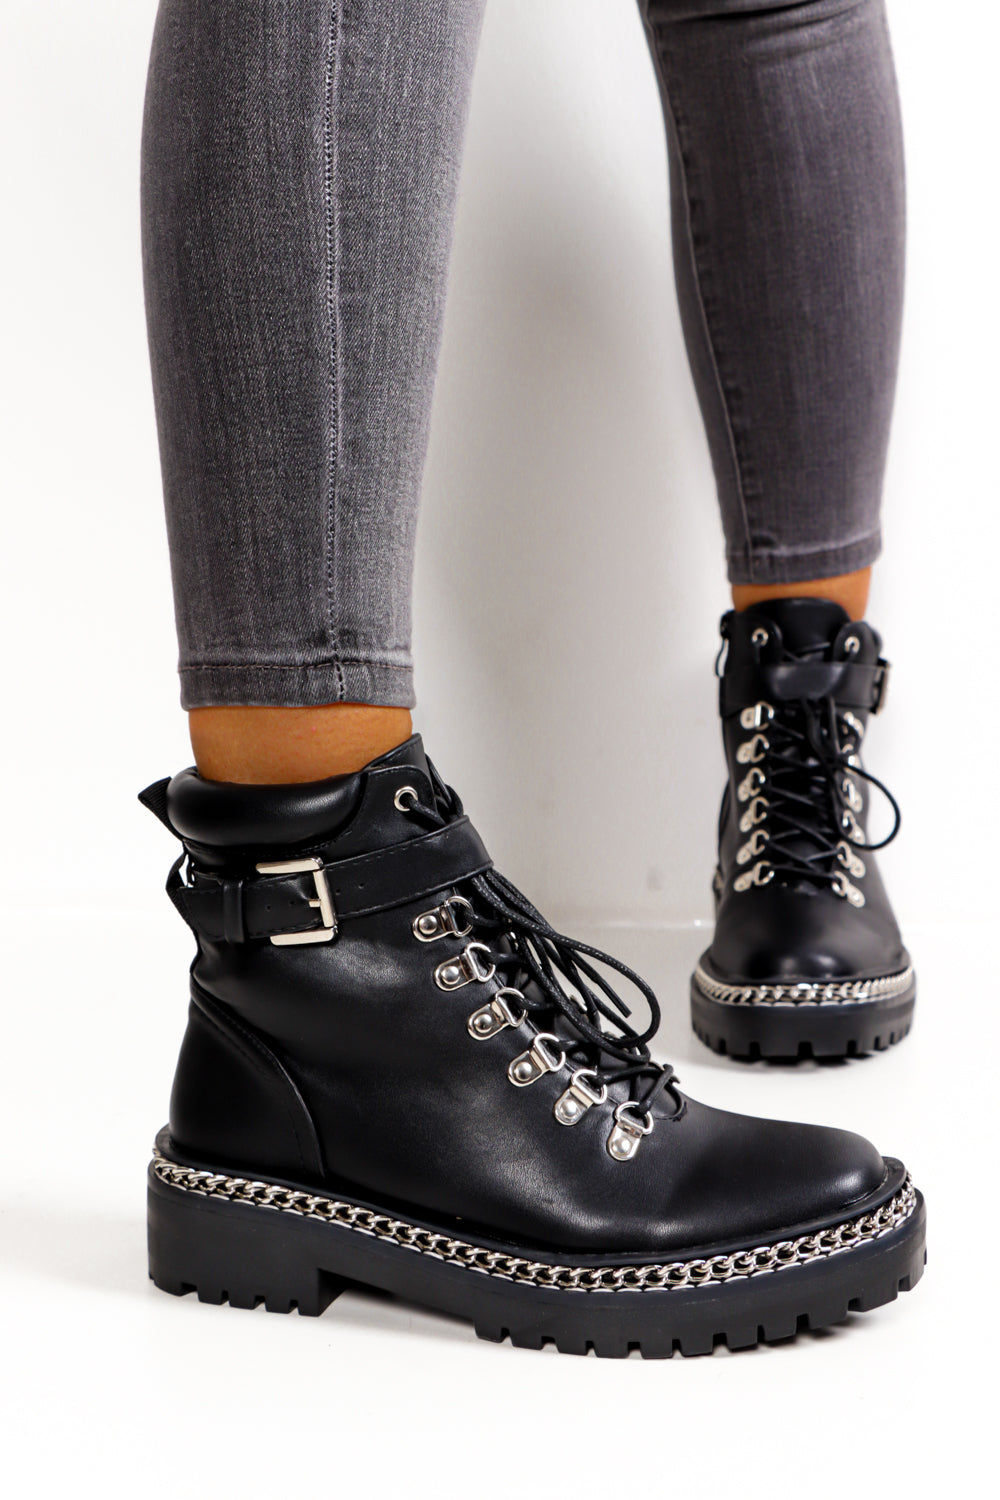 Buckle Standard - Black Pu Boot